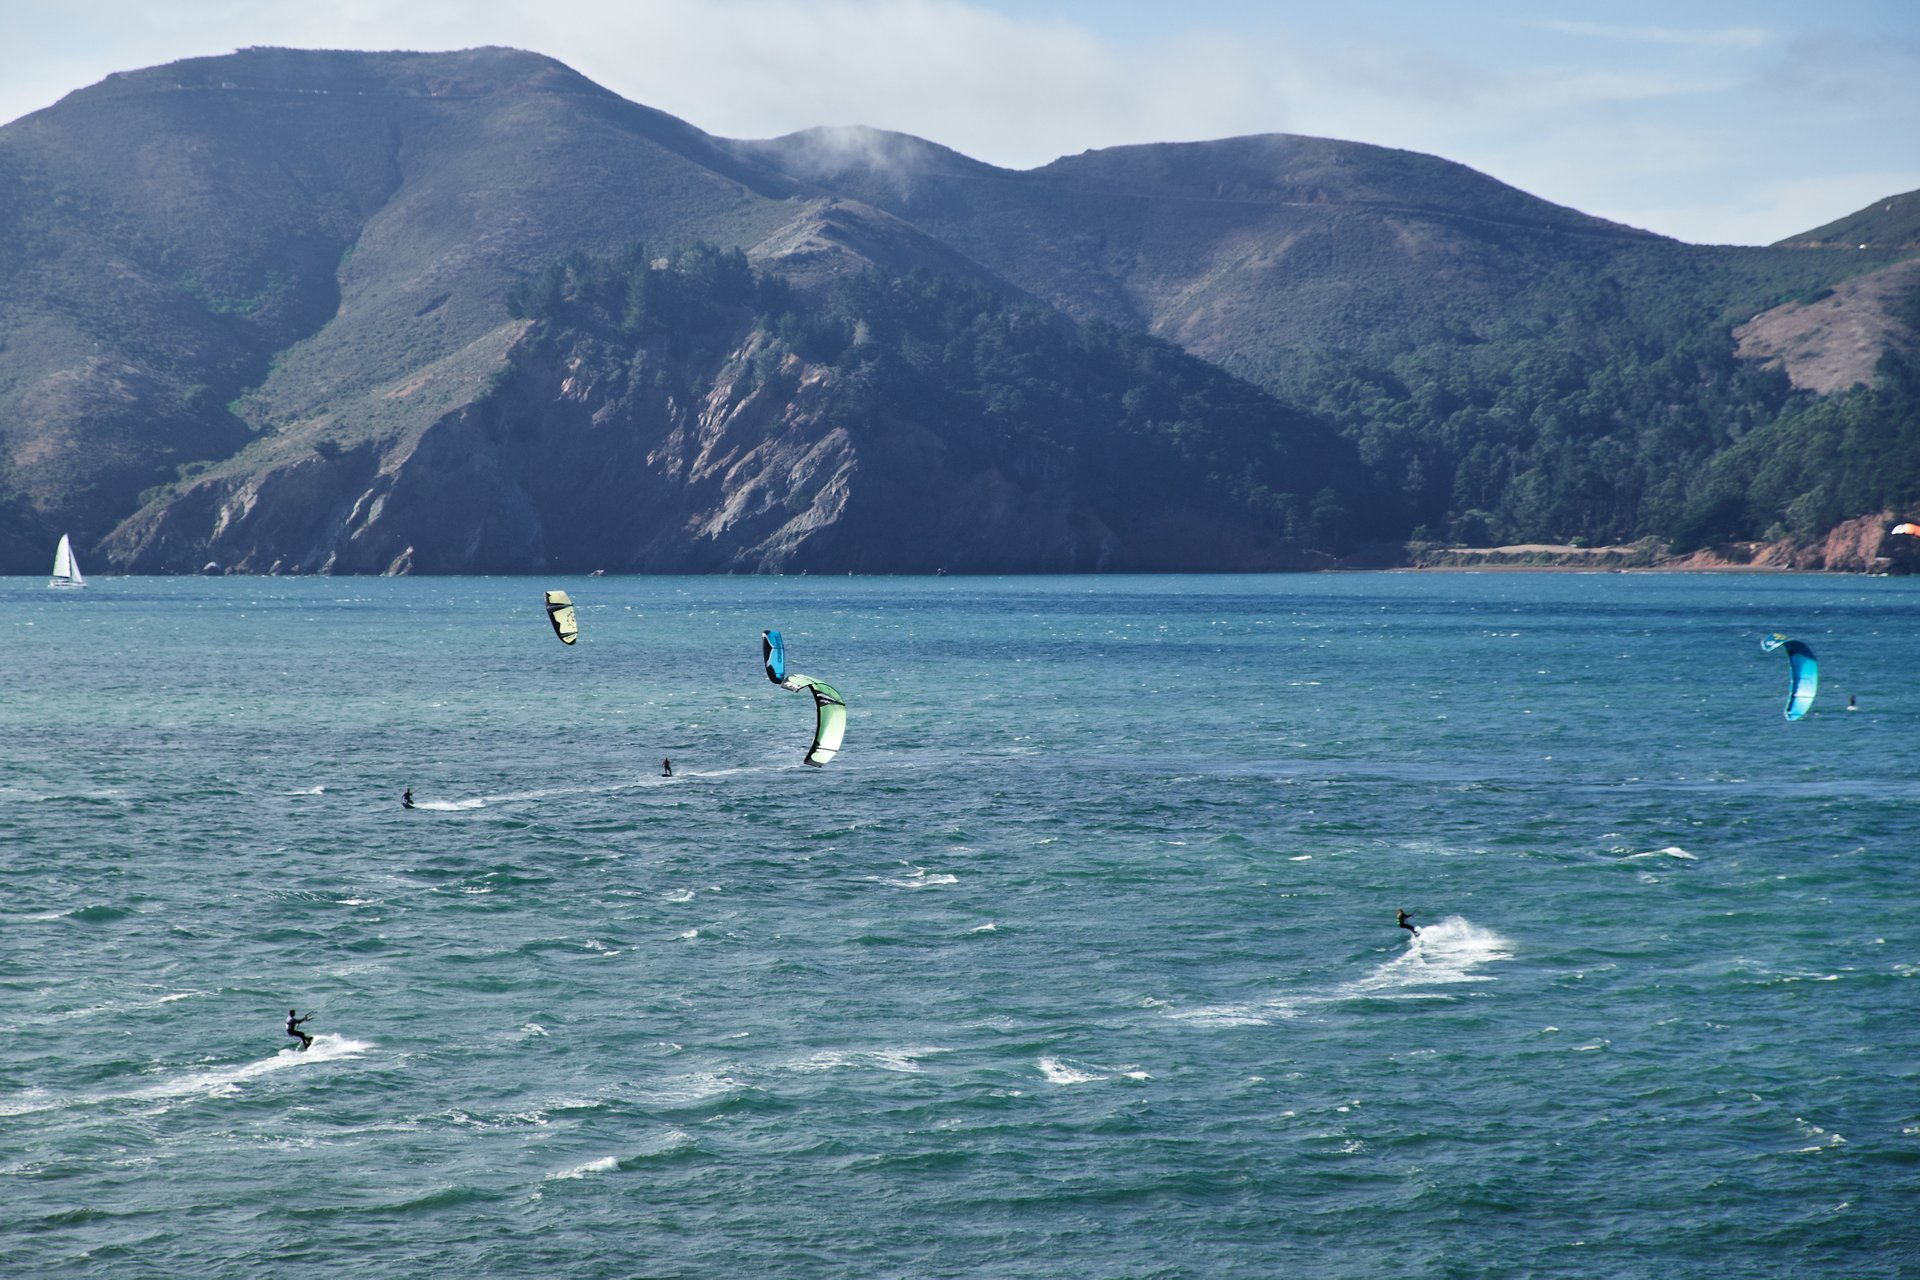 Kitesurfing and Windsurfing in San Francisco - Best Season 2020